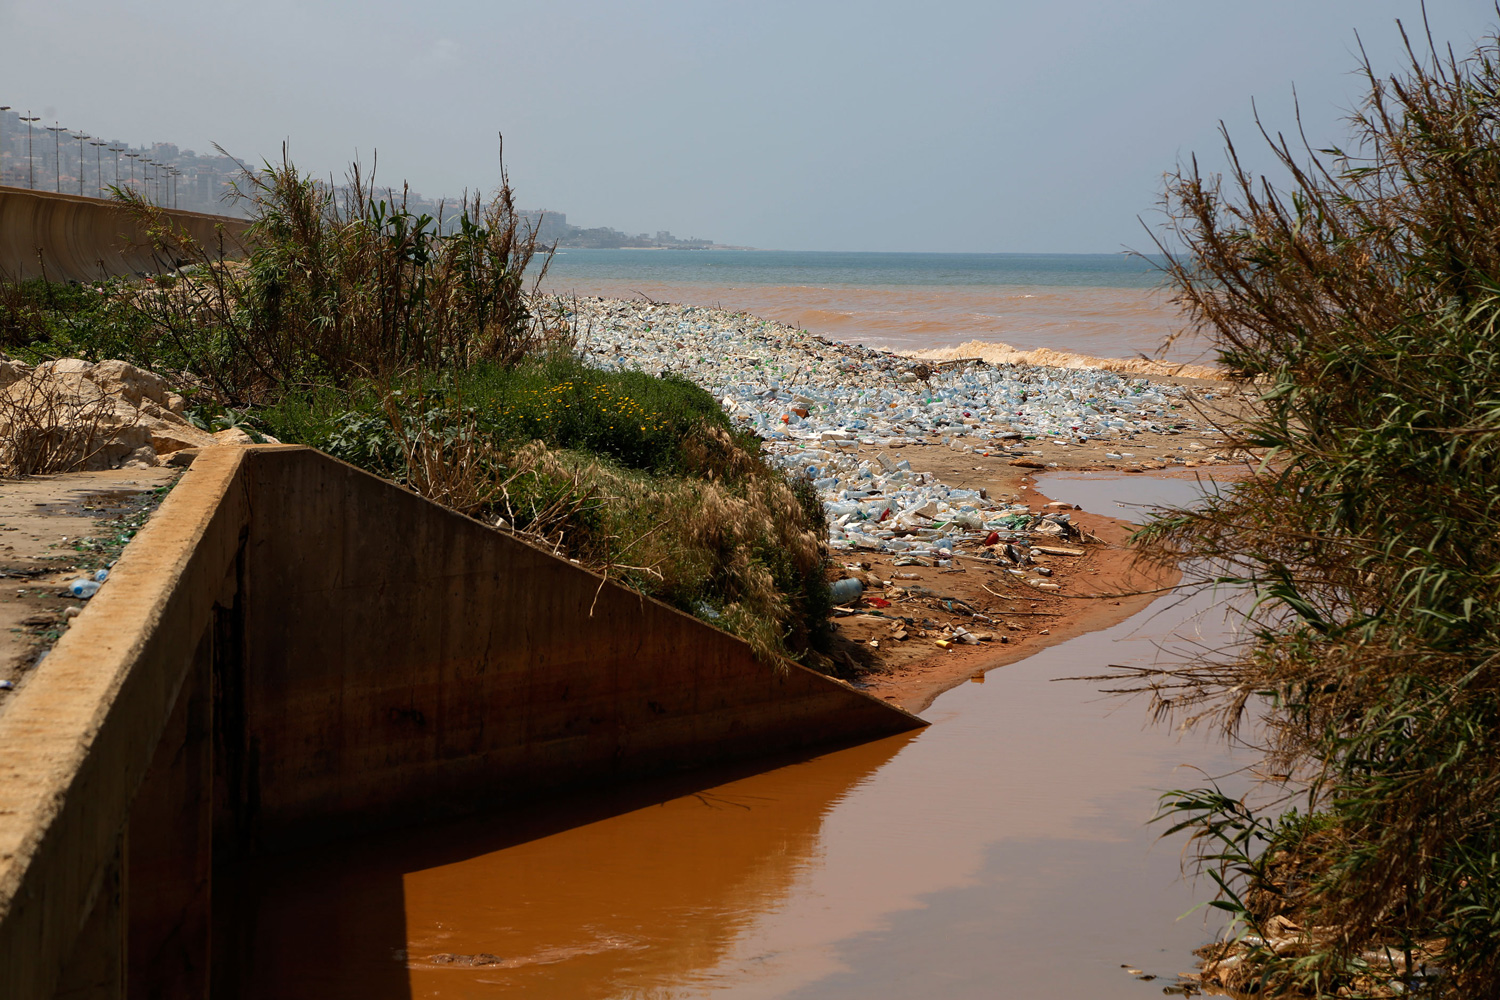 Sewage flows into the sea at Costa Brava.